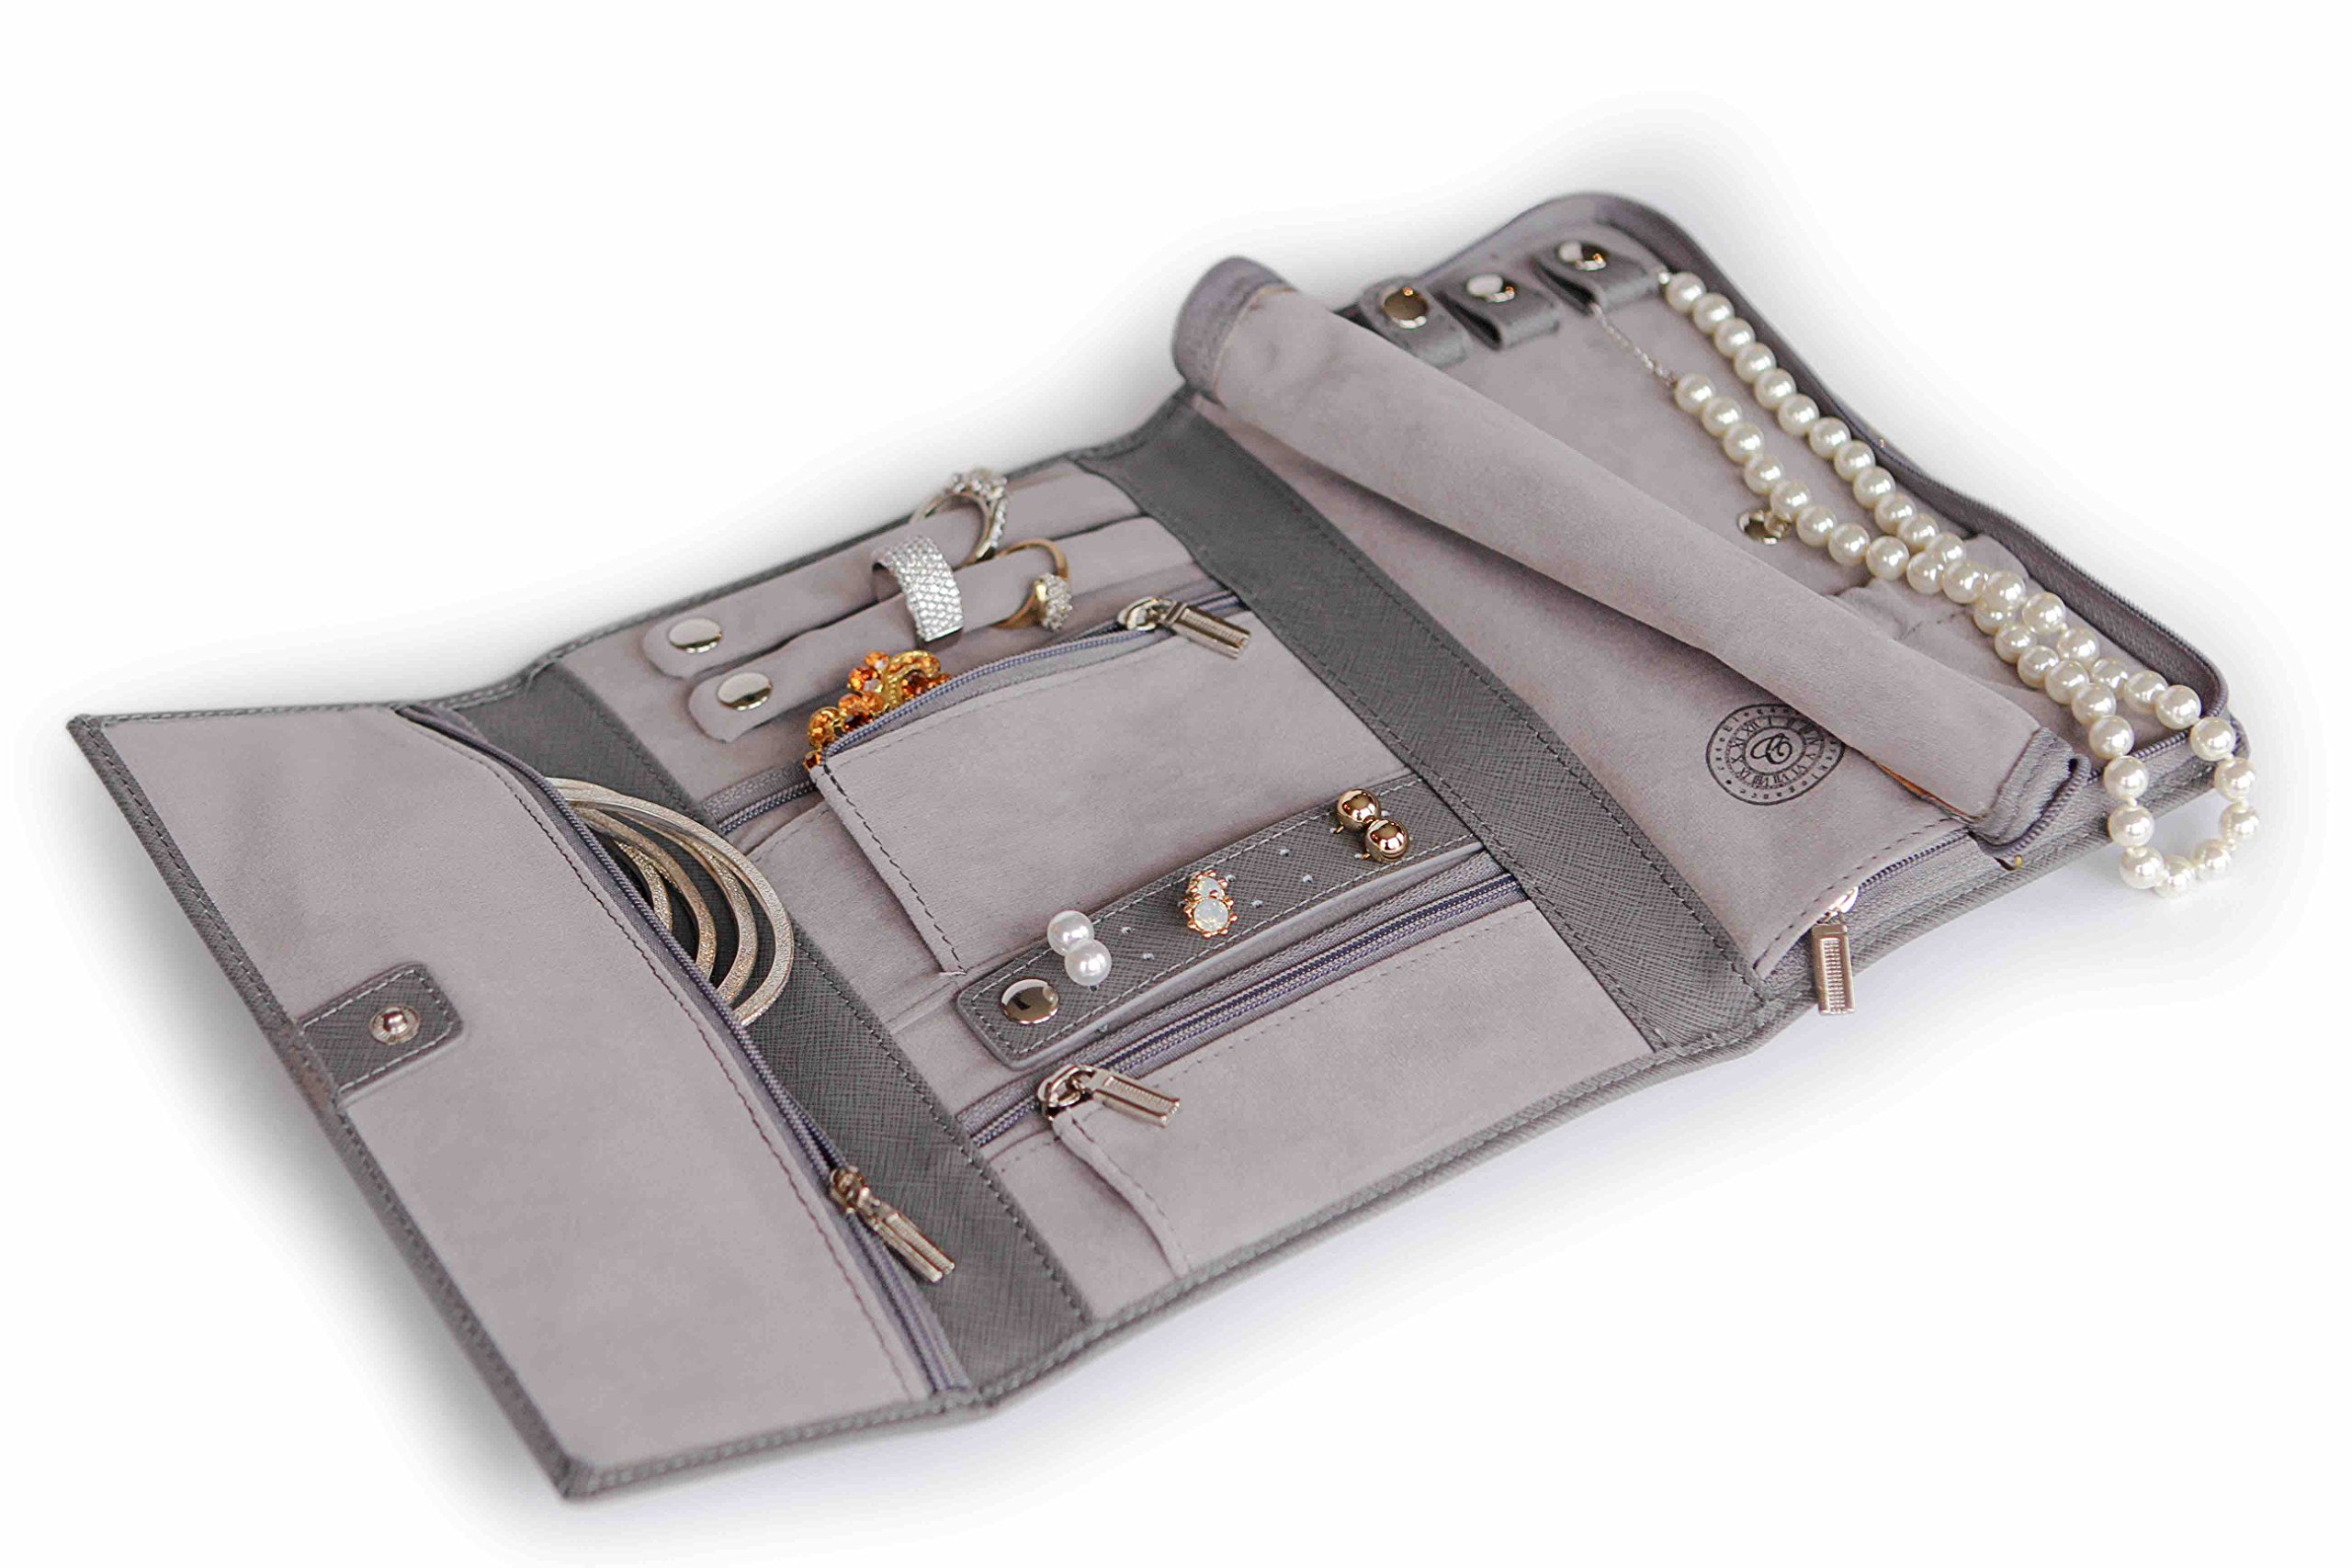 Saffiano Leather Travel Jewelry Case - Jewelry Organizer [Petite] by Case Elegance by case Elegance (Image #6)